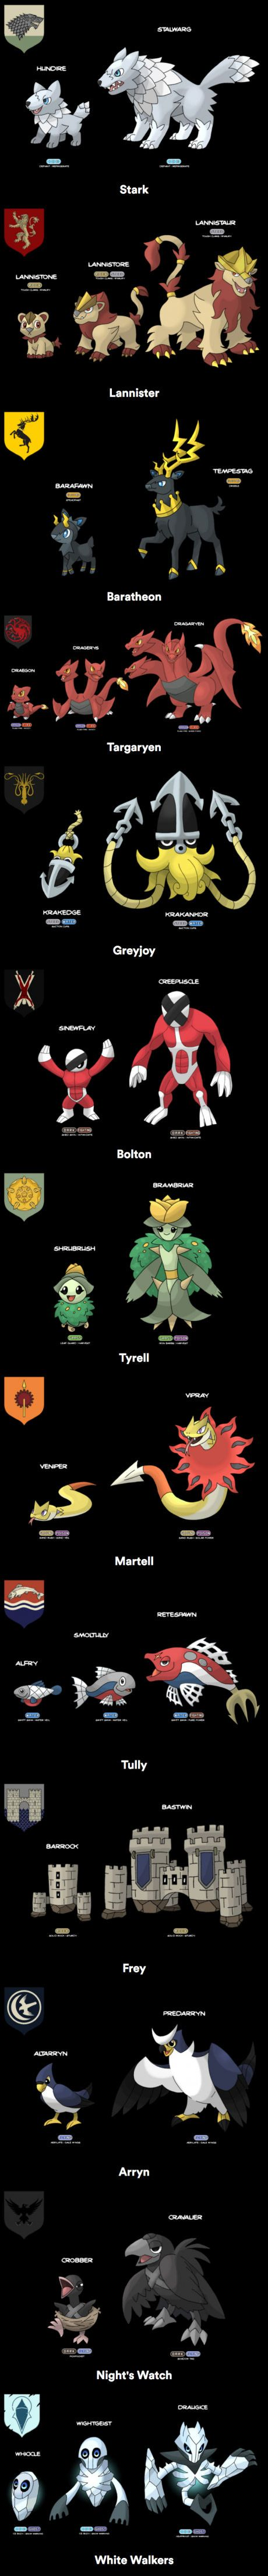 Game of thrones Pokémon crossover<<I don't watch the show but wow